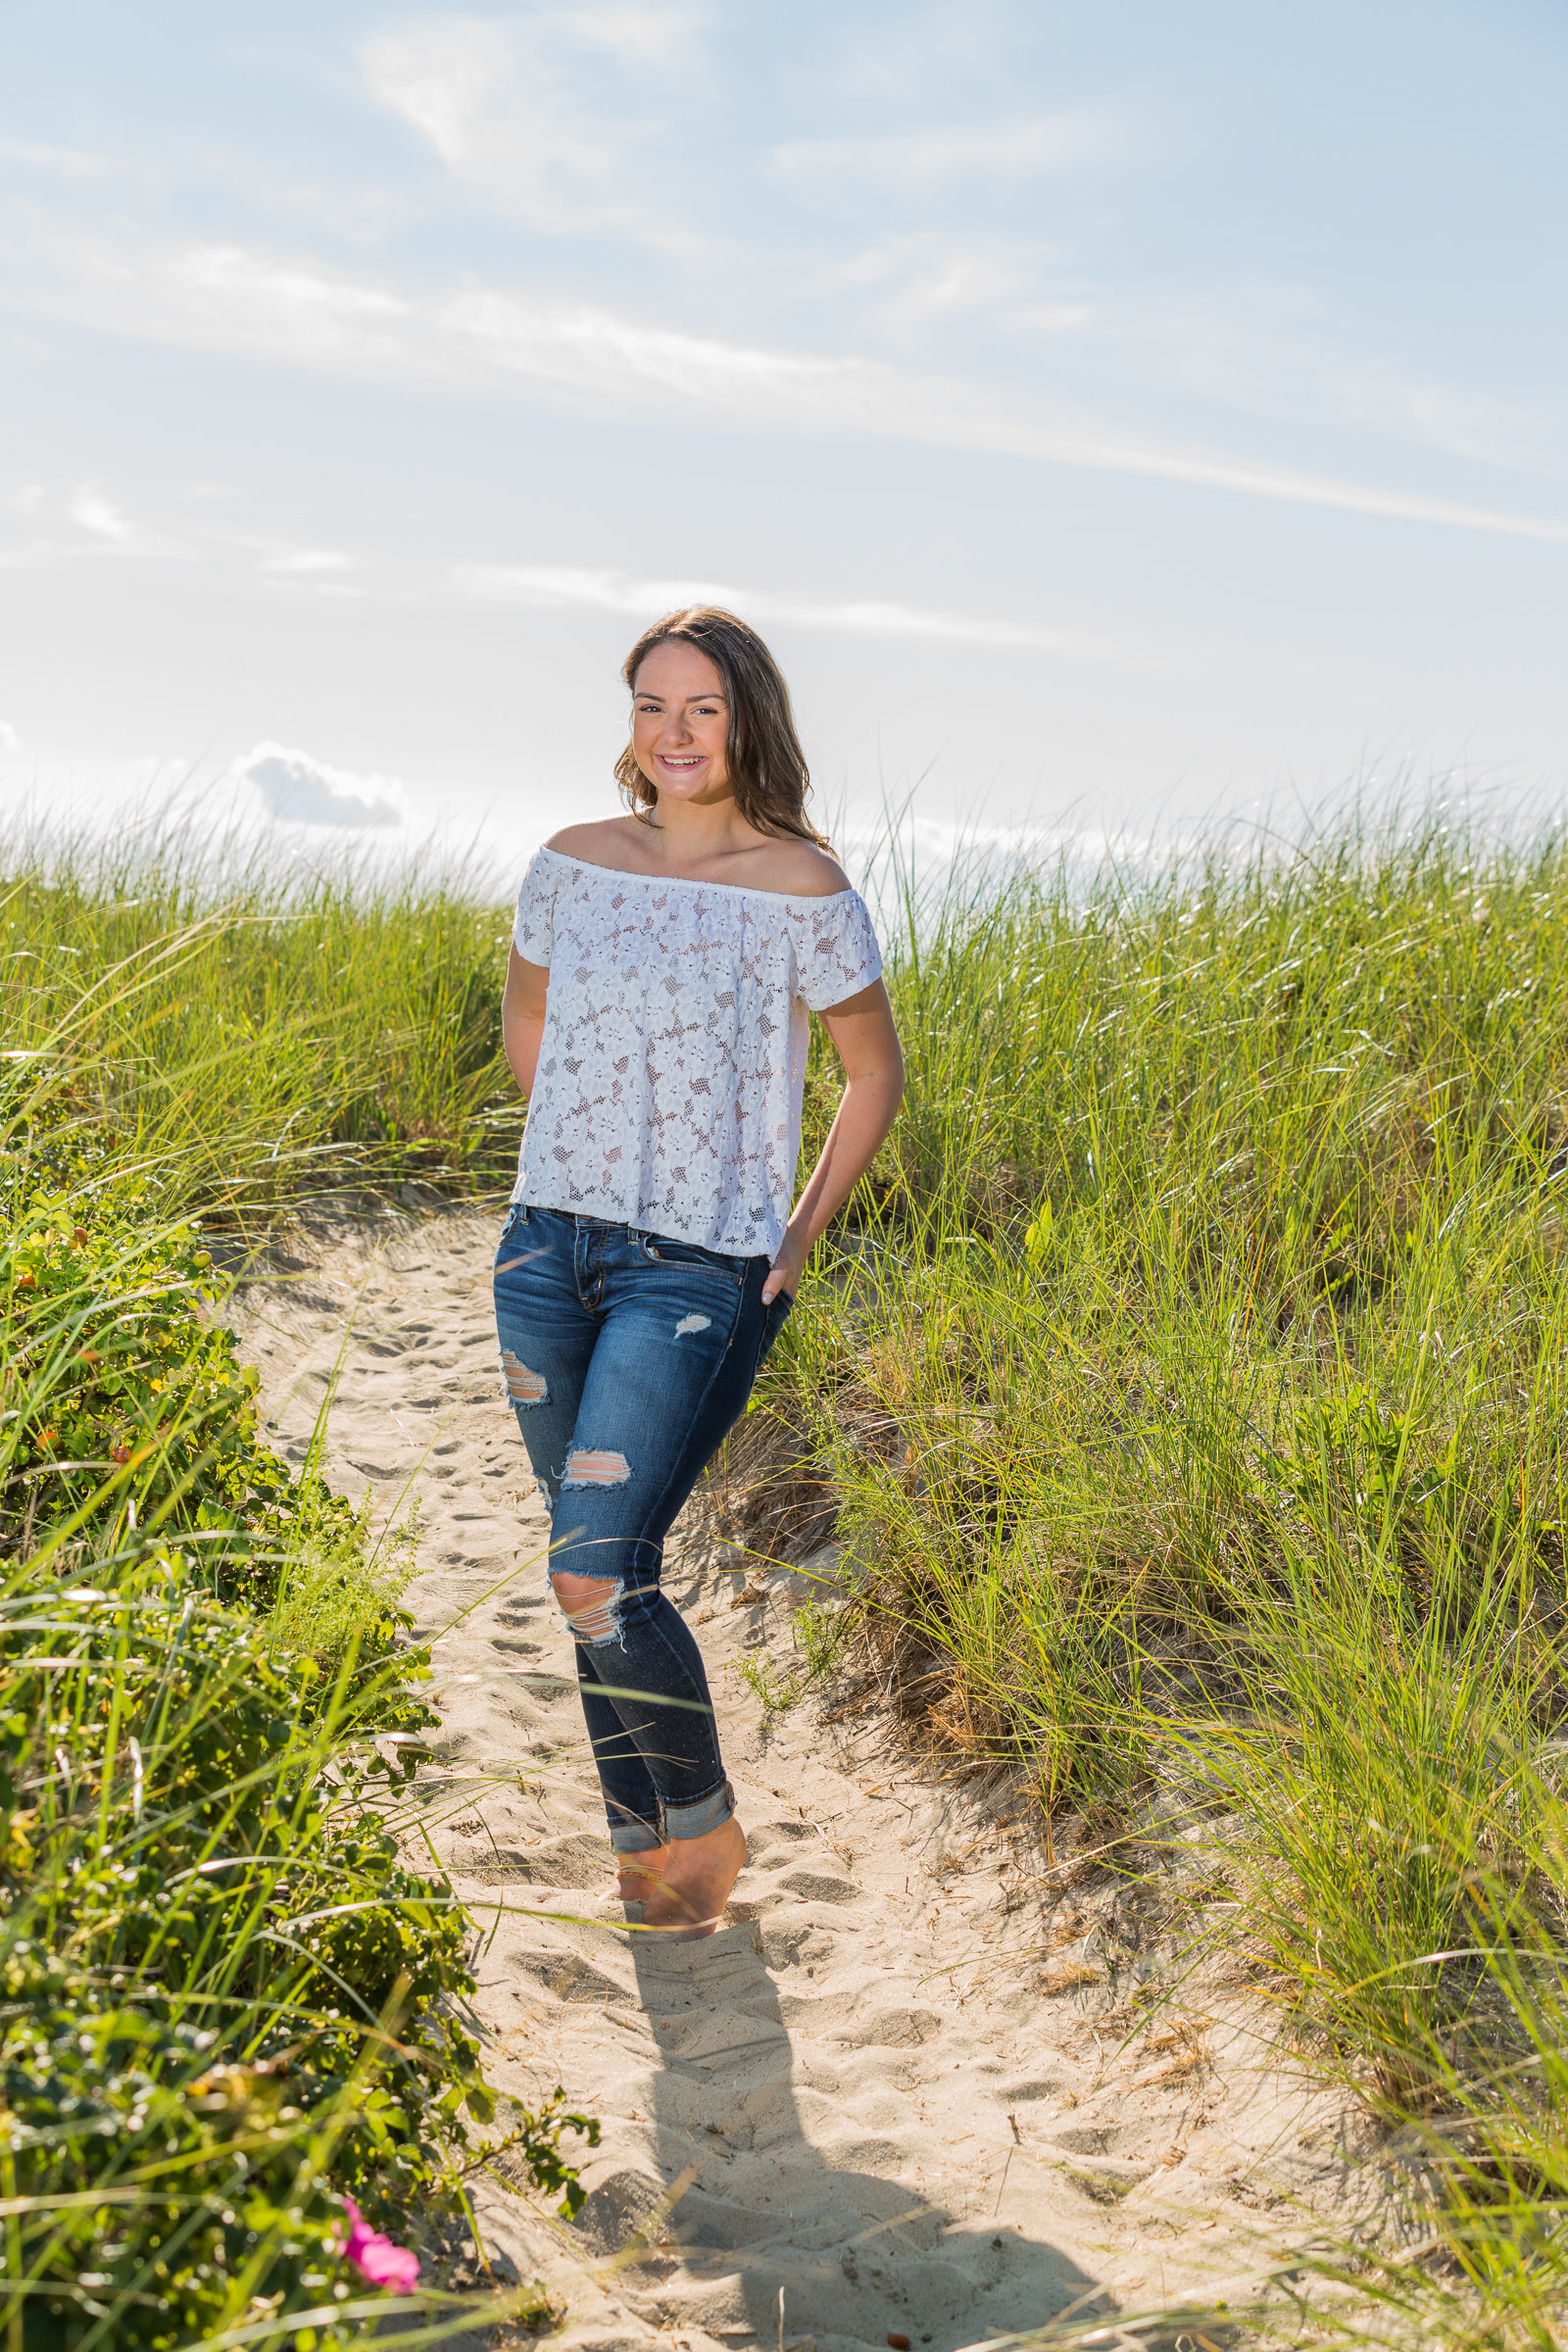 ColdStorageBeach MA_CapeCodFamilyPortraits_Michelle Kaye Photography-11666